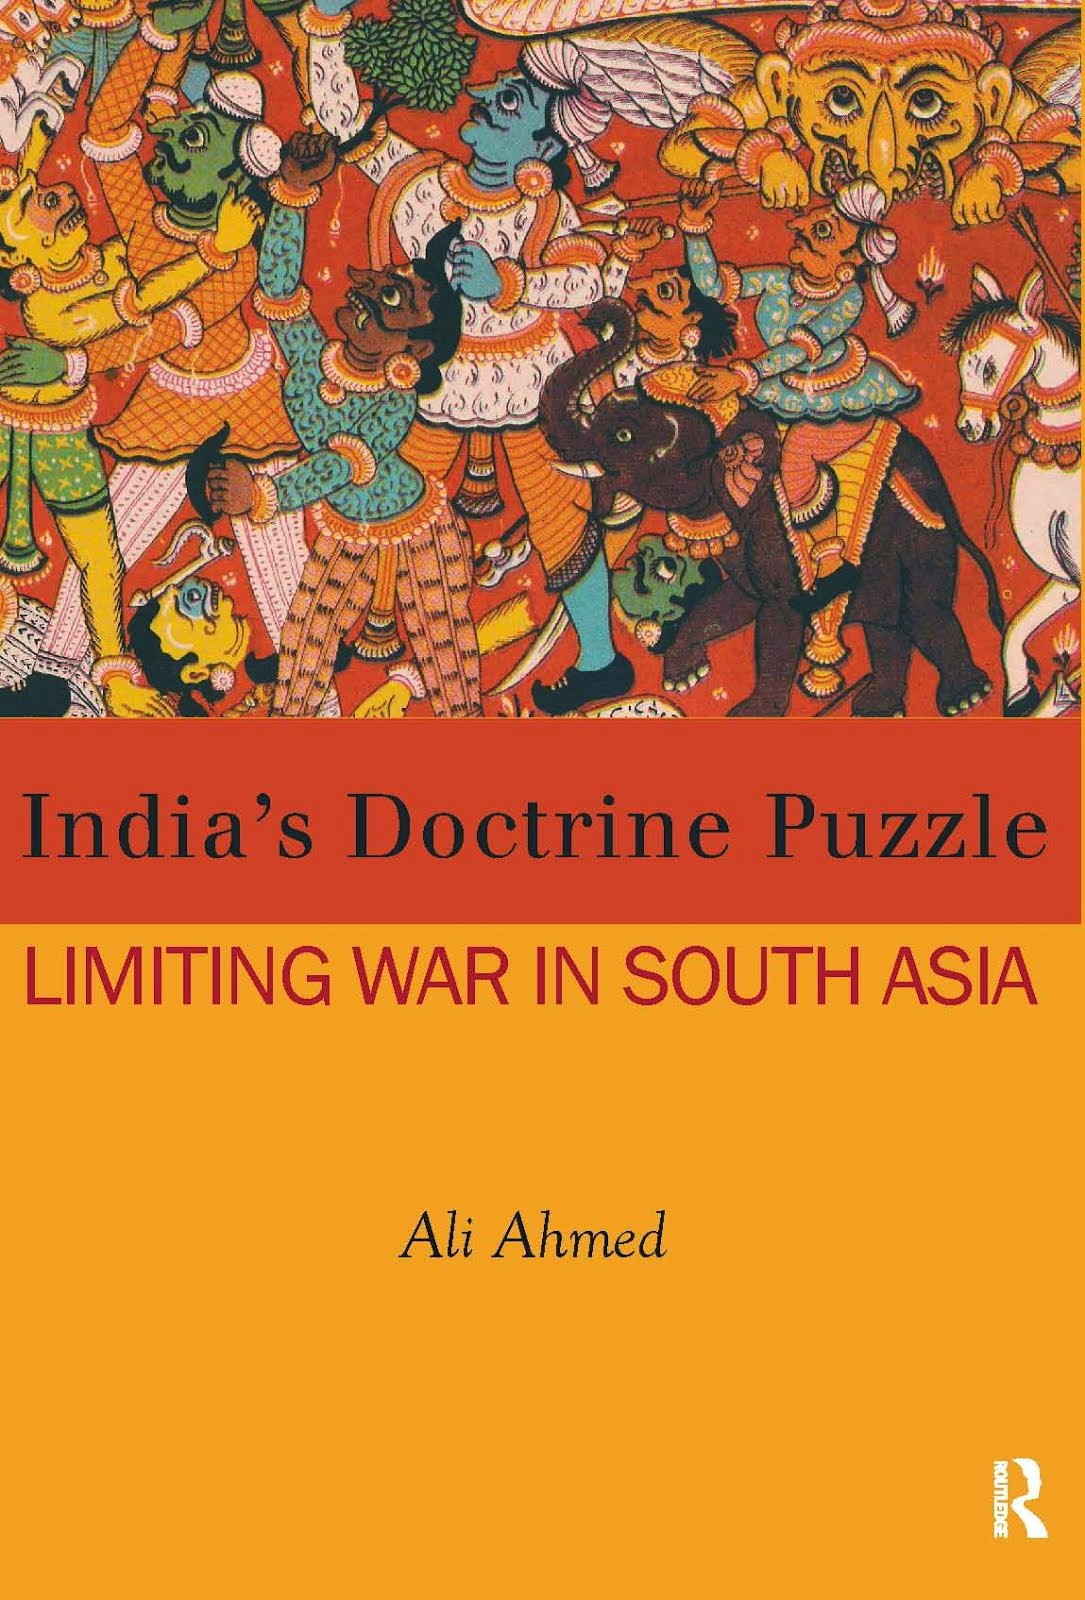 India's Doctrine Puzzle